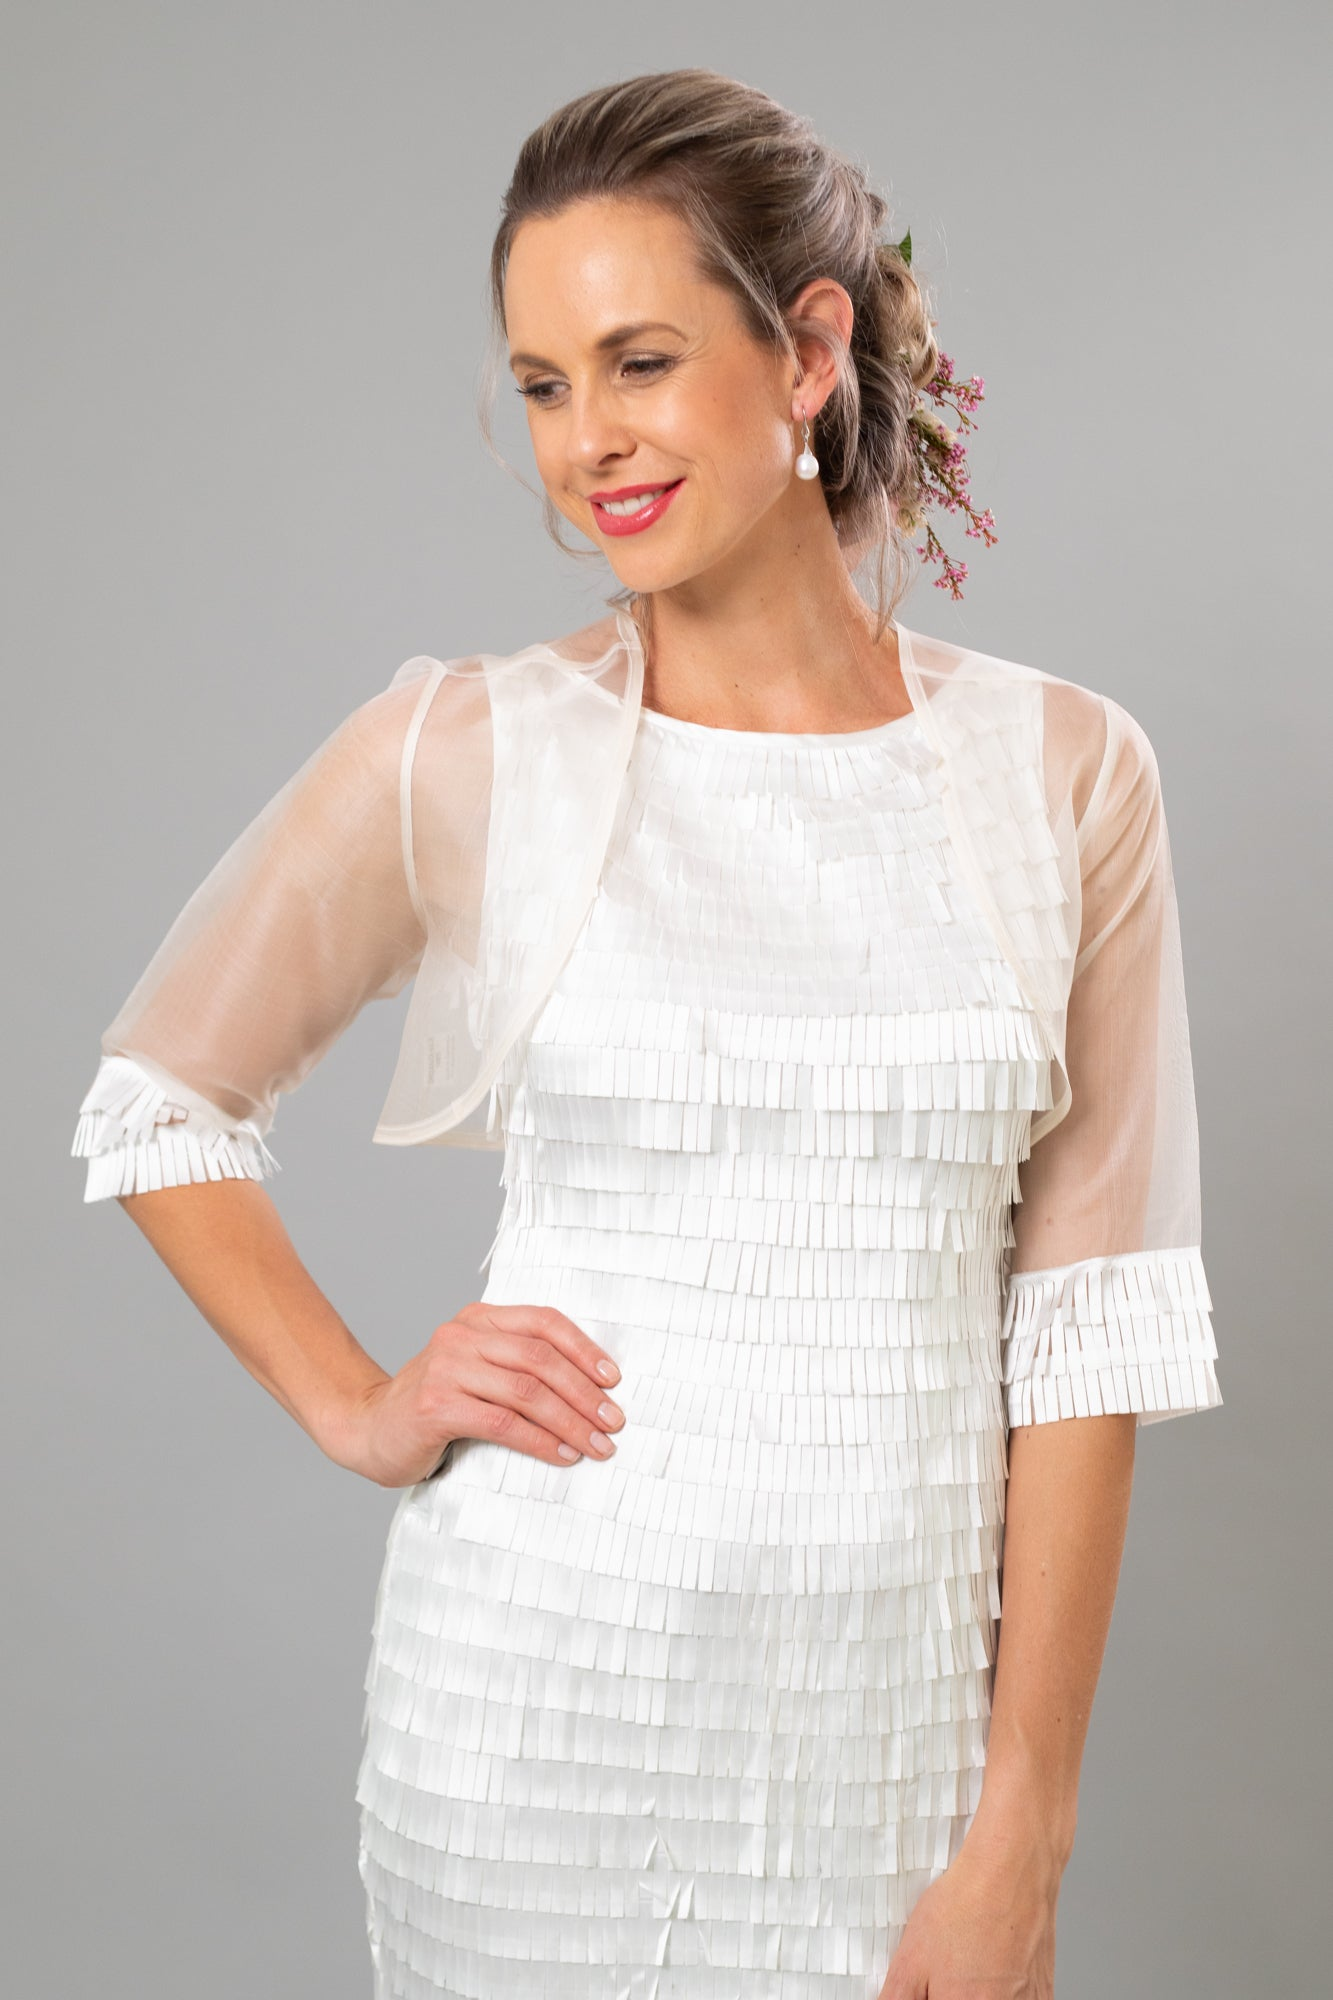 Party Bolero - For the Understated Bride